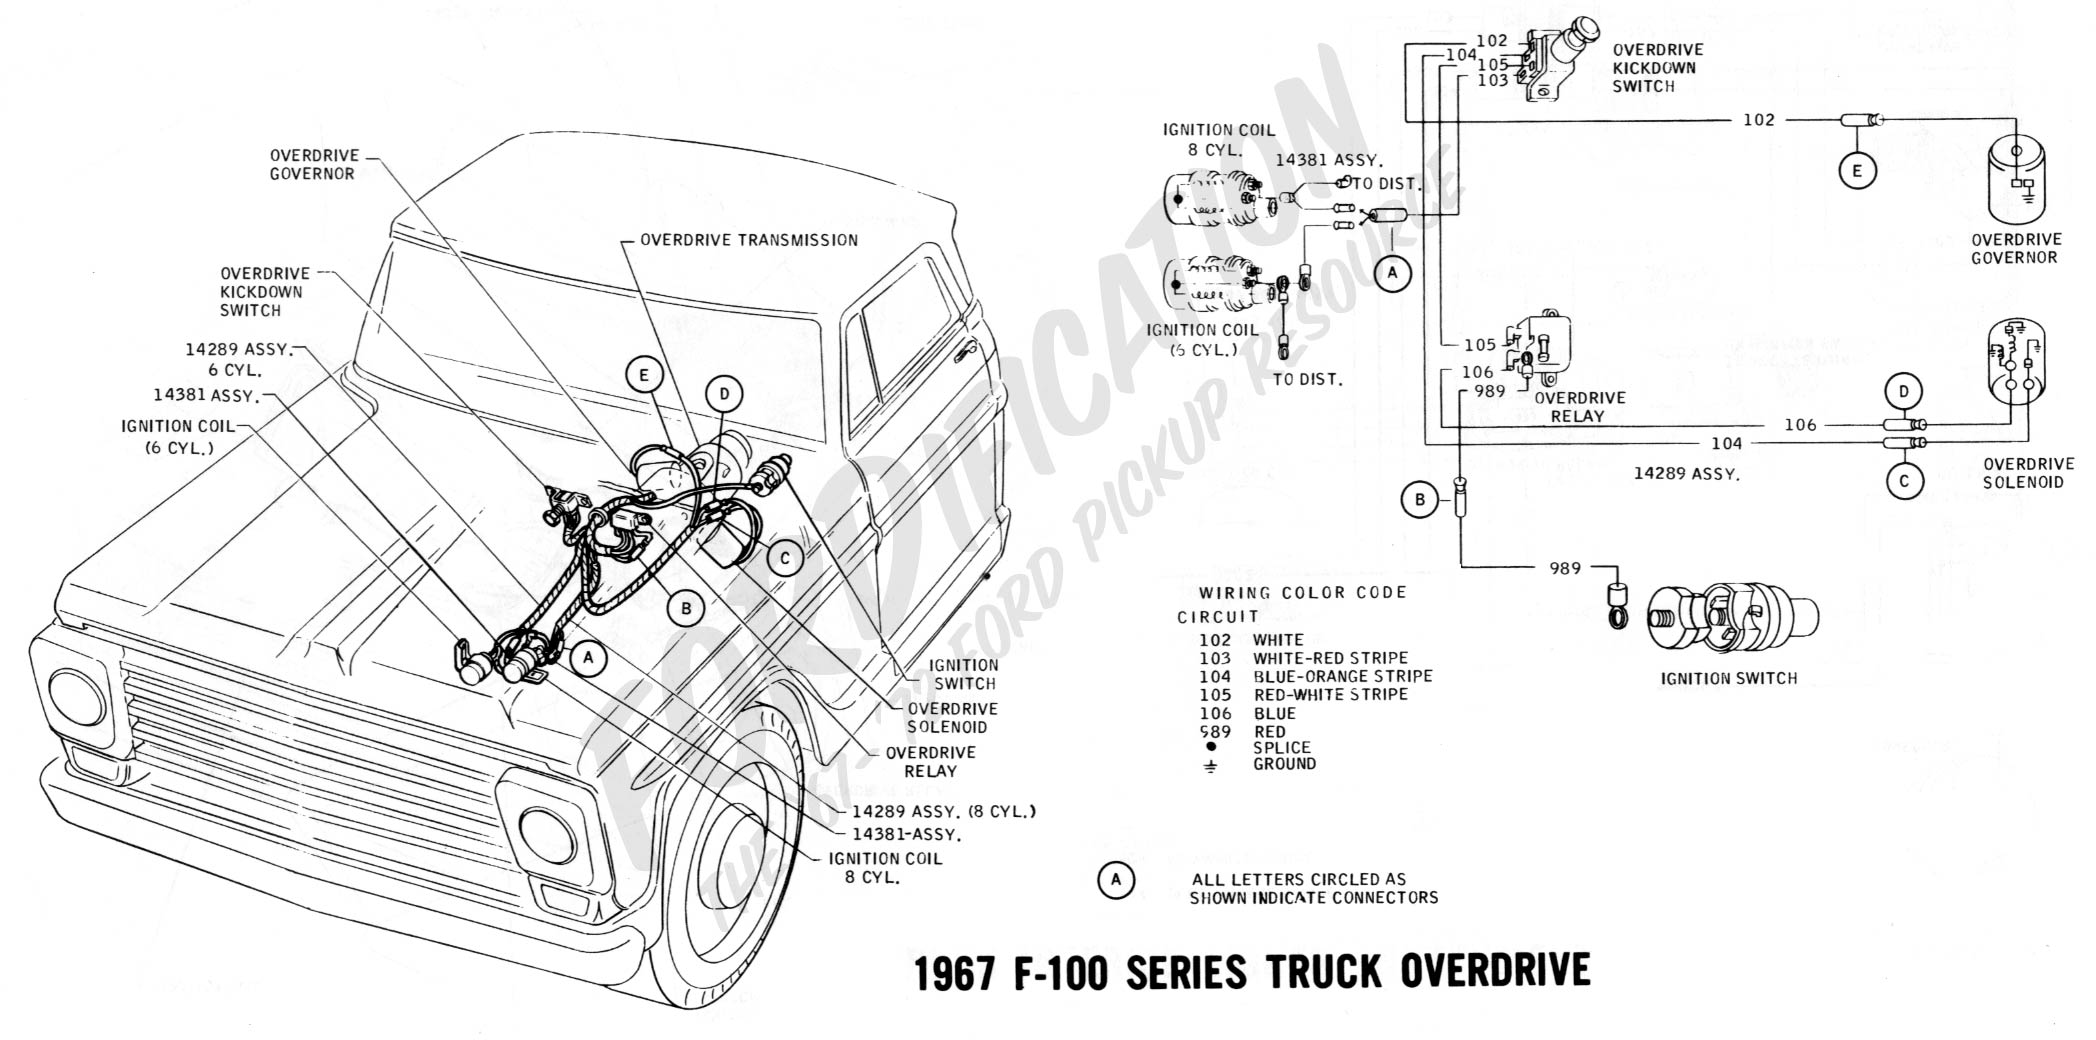 wiring 1967overdrive2 ford truck technical drawings and schematics section h wiring wiring diagram 1972 ford f250 at edmiracle.co